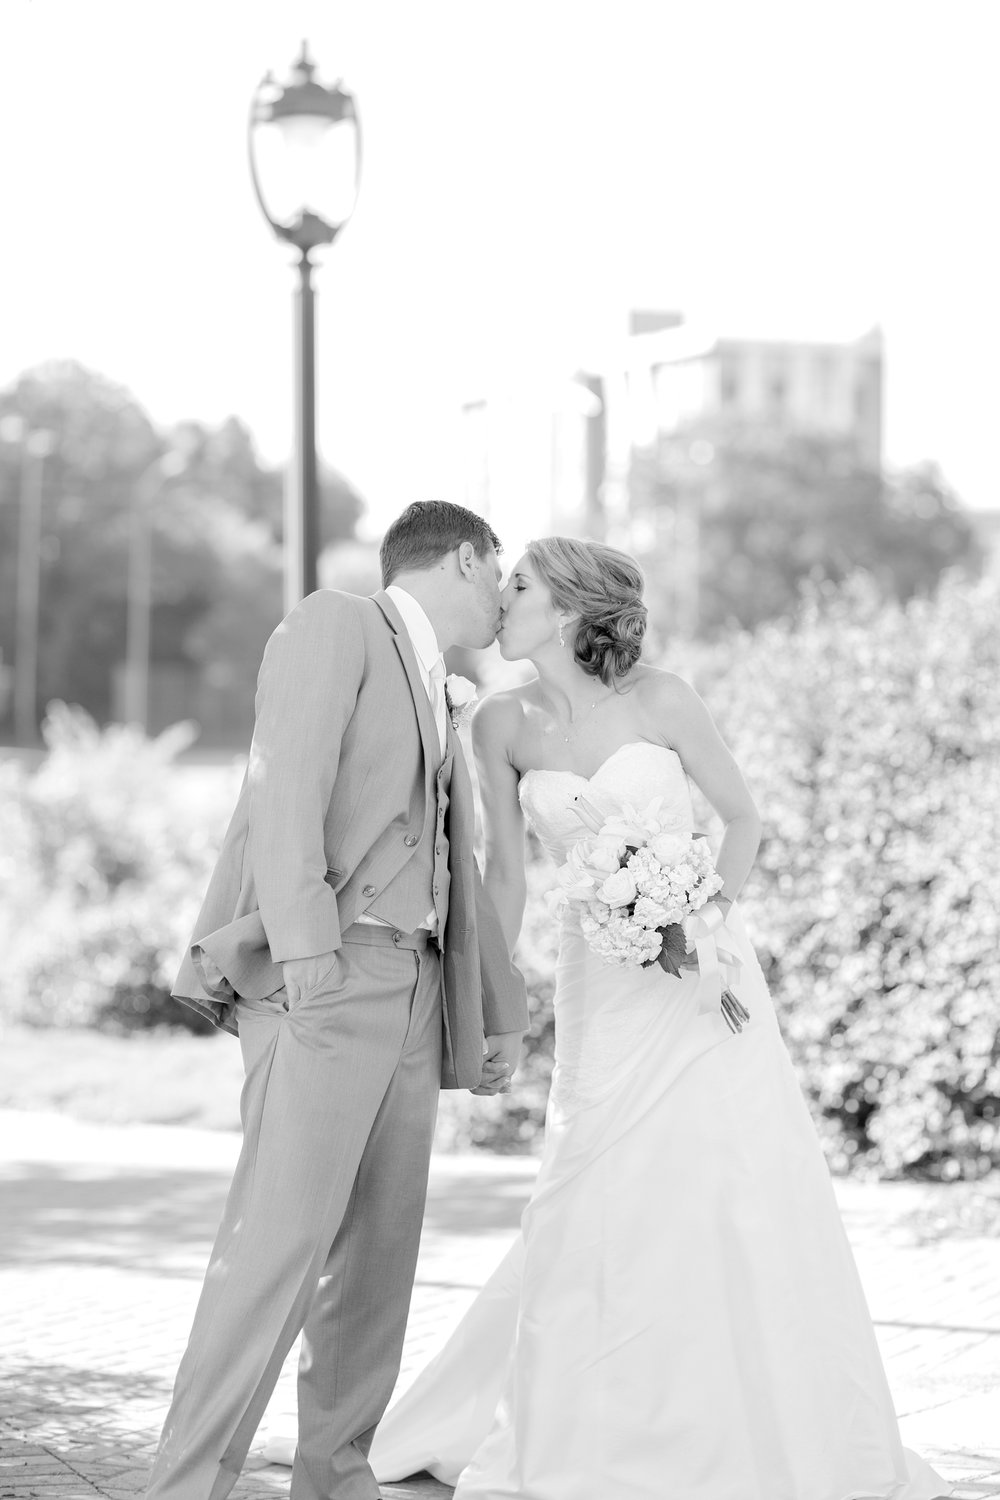 Diers 3-Bride & Groom Portraits-764_anna grace photography charlotte north carolina wedding photographer photo.jpg